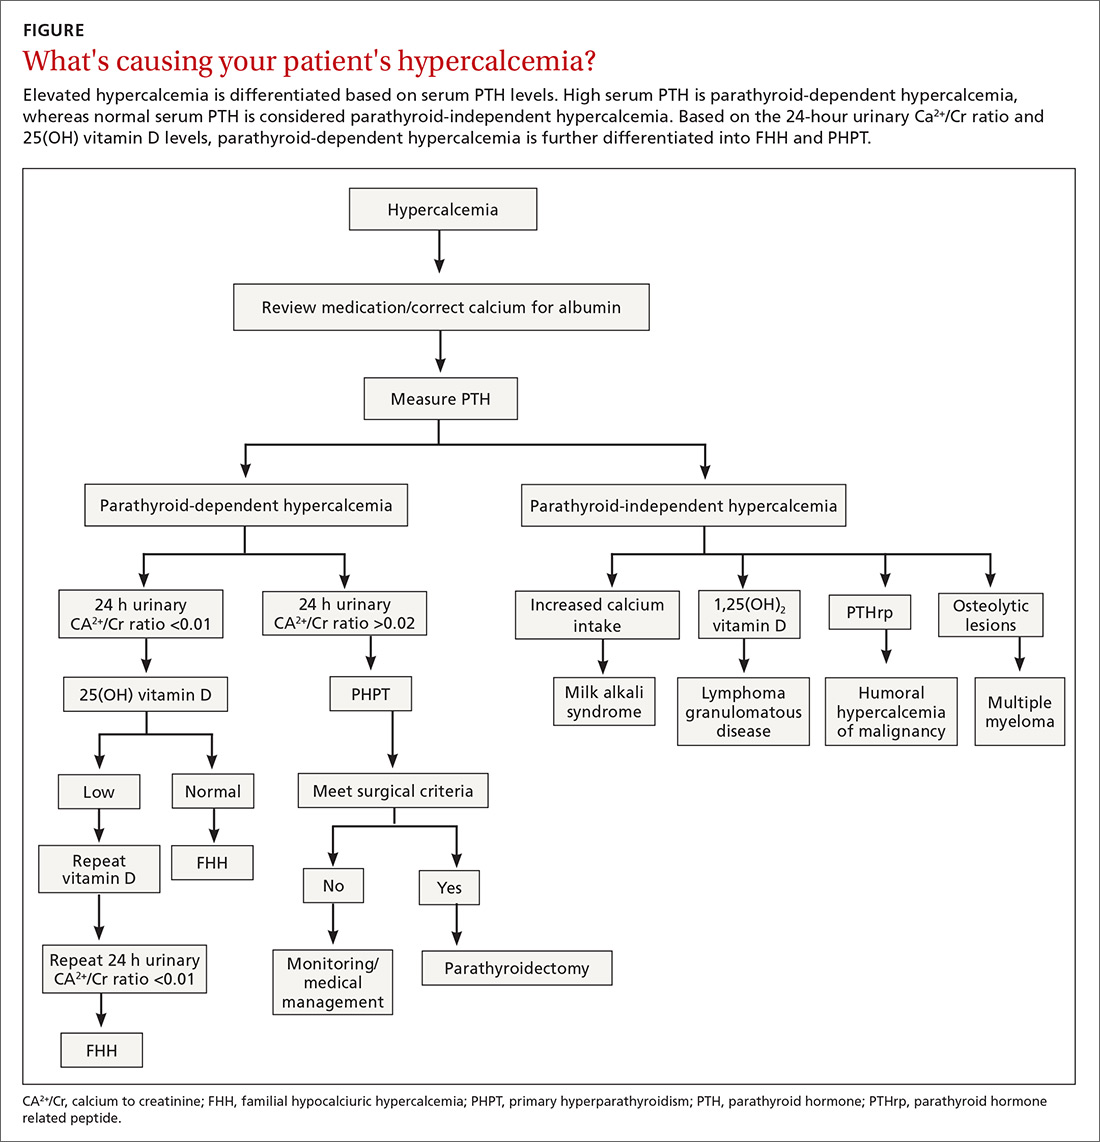 What's causing your patient's hypercalcemia?